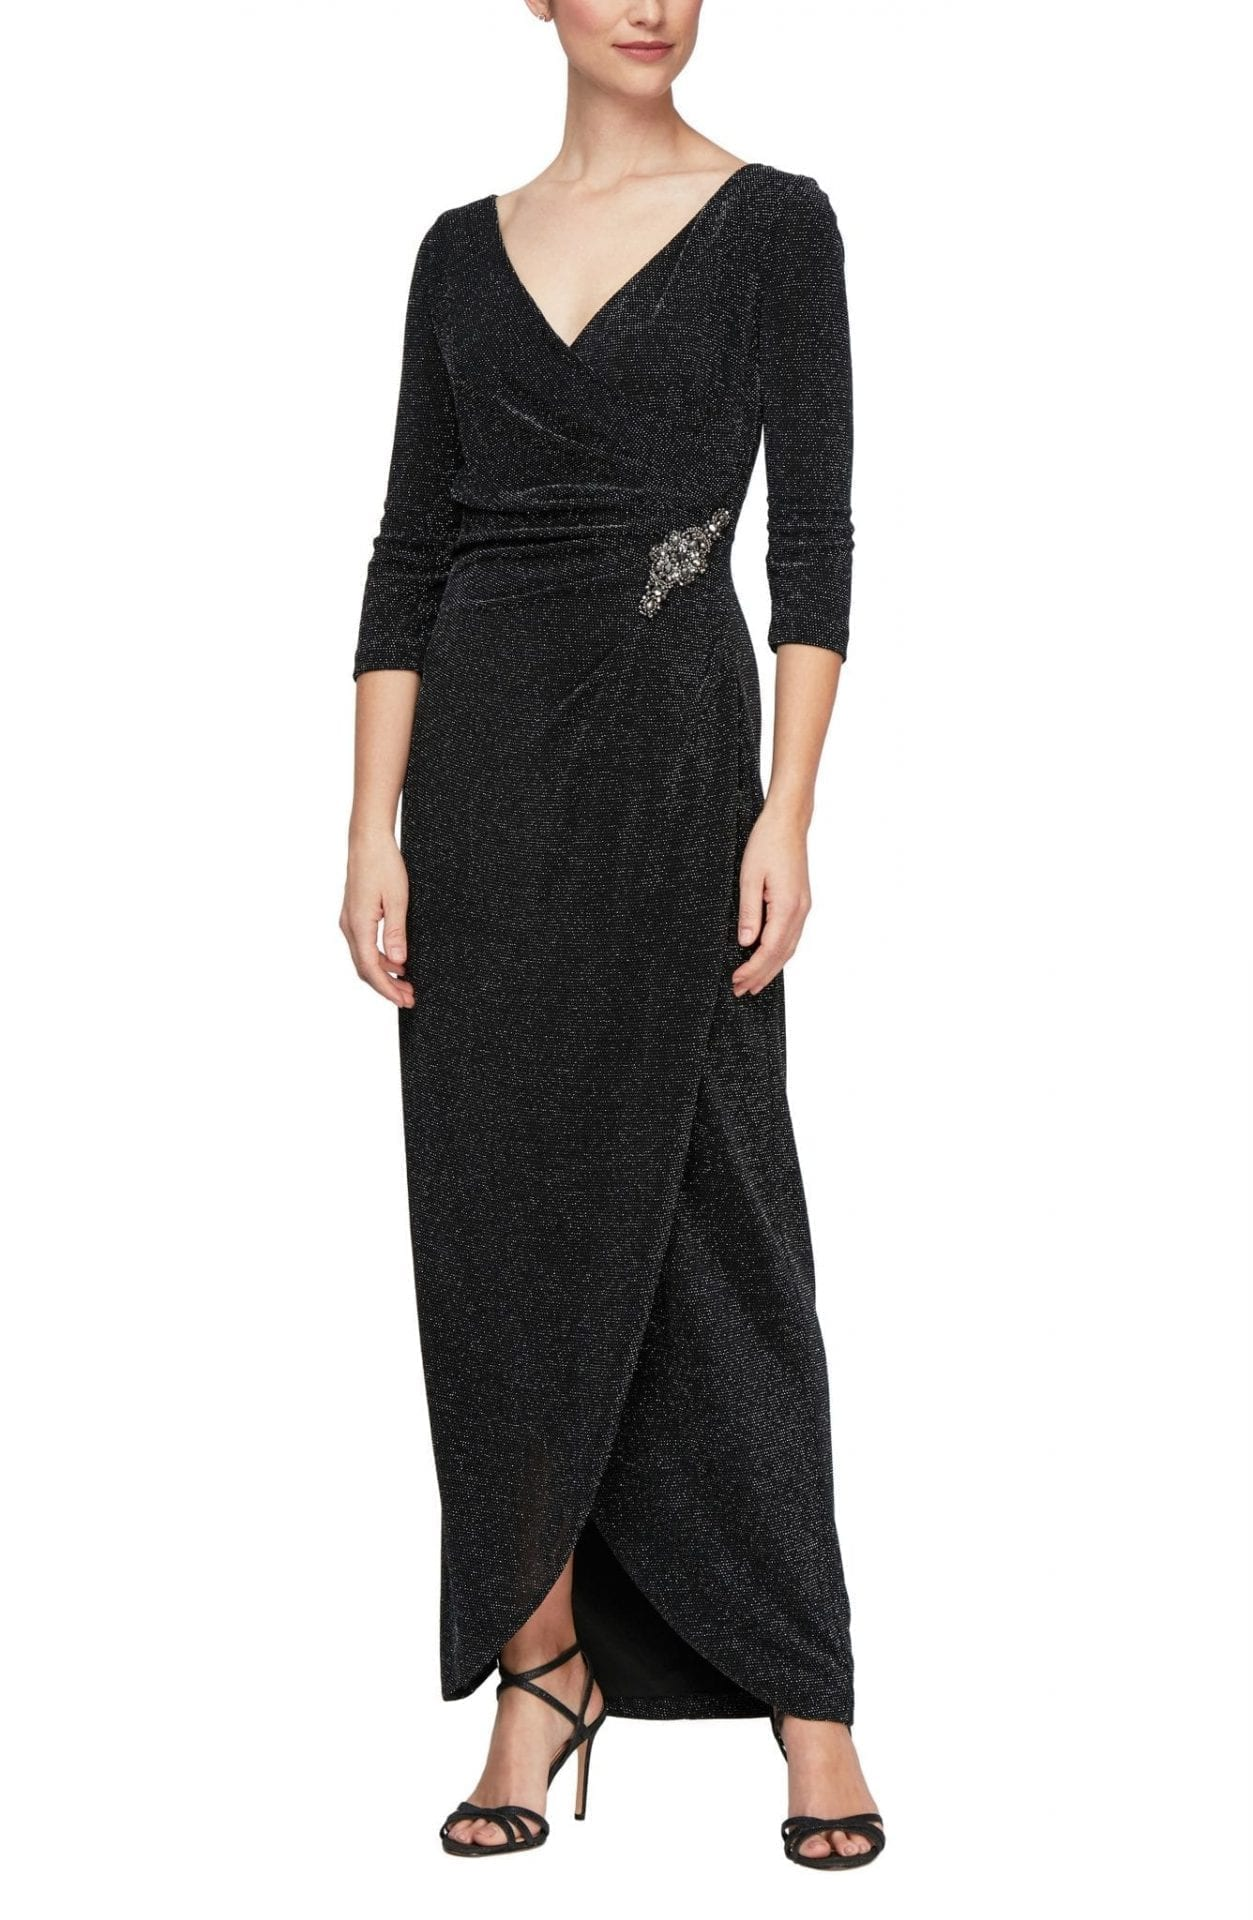 ALEX EVENINGS Surplice Metallic Knit Dress